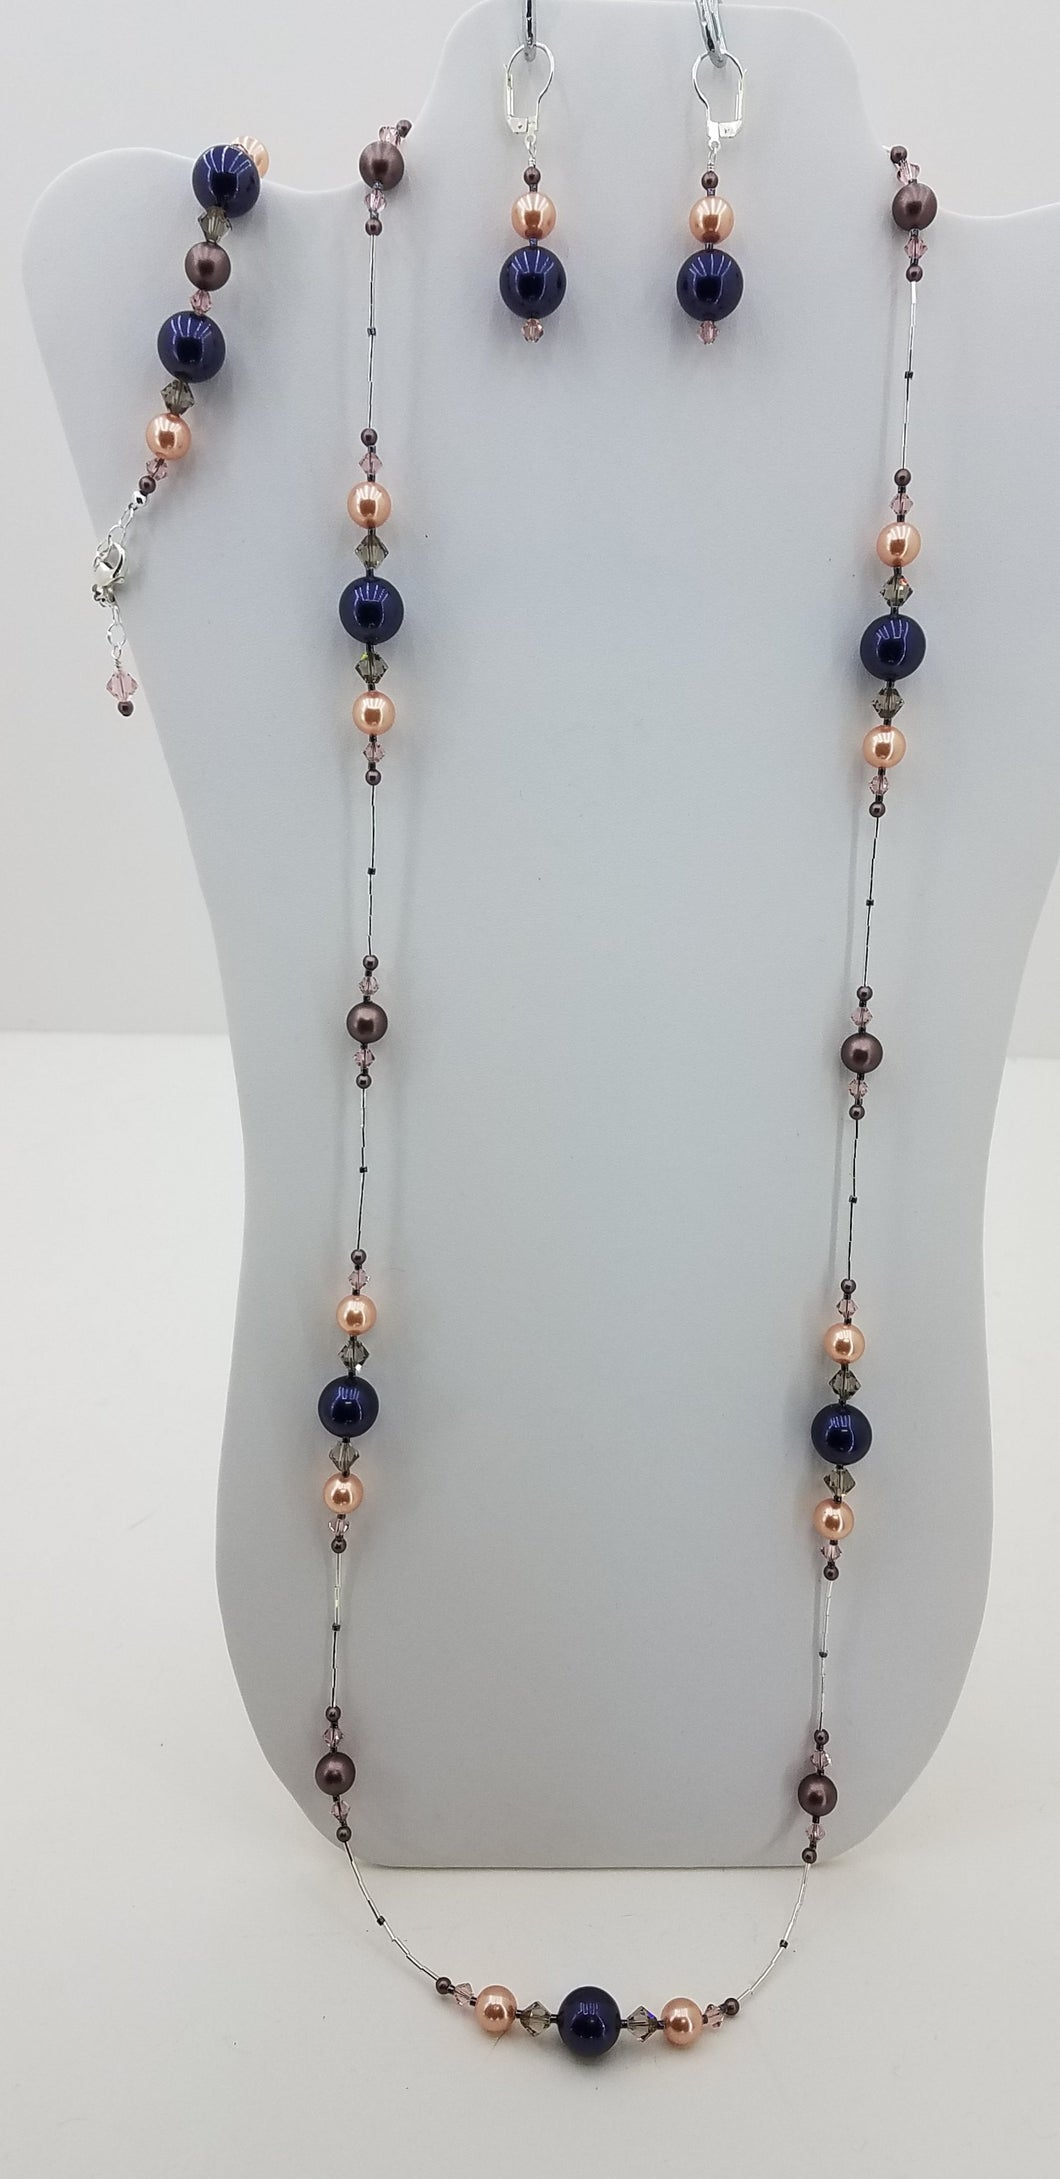 A lightweight and long combination of Crystals & Crystal Pearls in night blue, peach, & brown velvet,  & Sterling Silver necklace, earrings, & bracelet